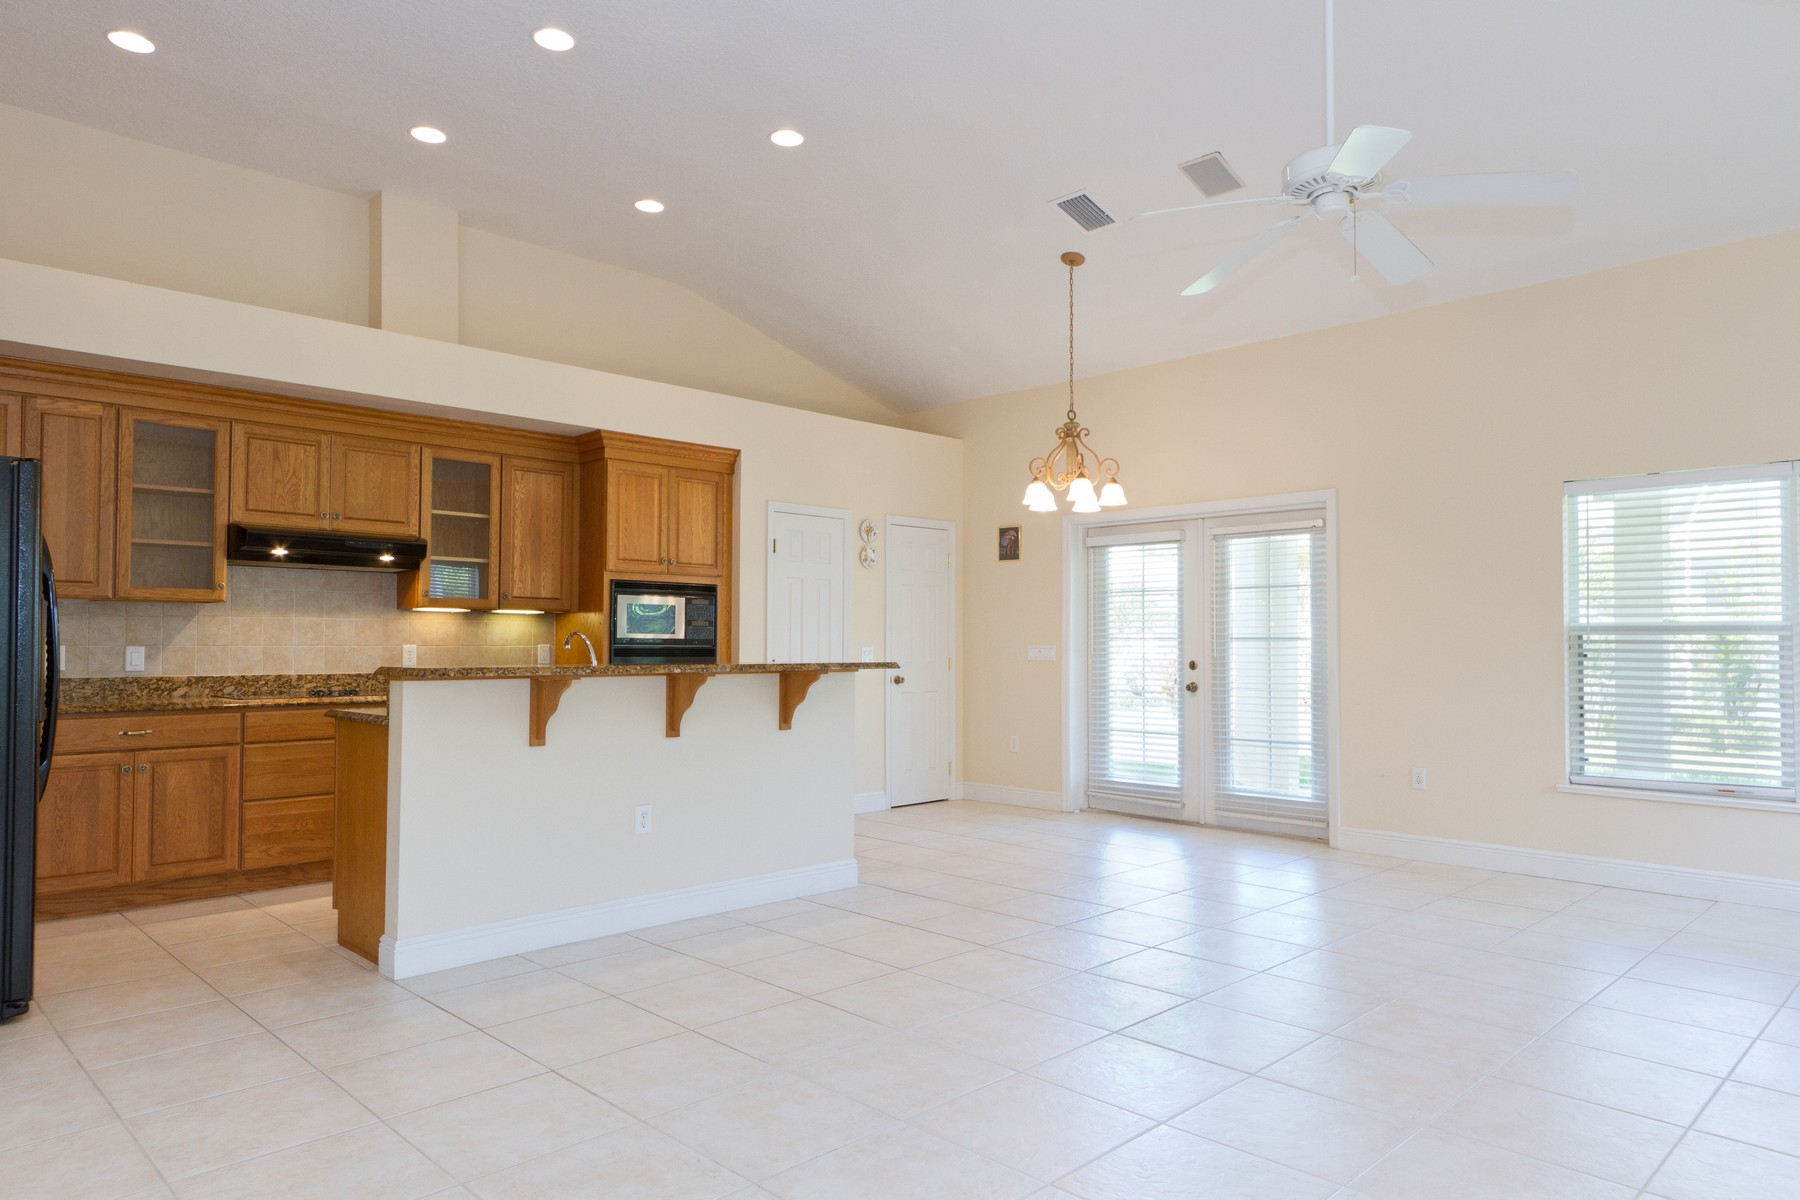 Additional photo for property listing at Inviting Home With Generous Room Sizes and Open Concept Floorplan! 771 Brookedge Terrace Sebastian, Florida 32958 United States